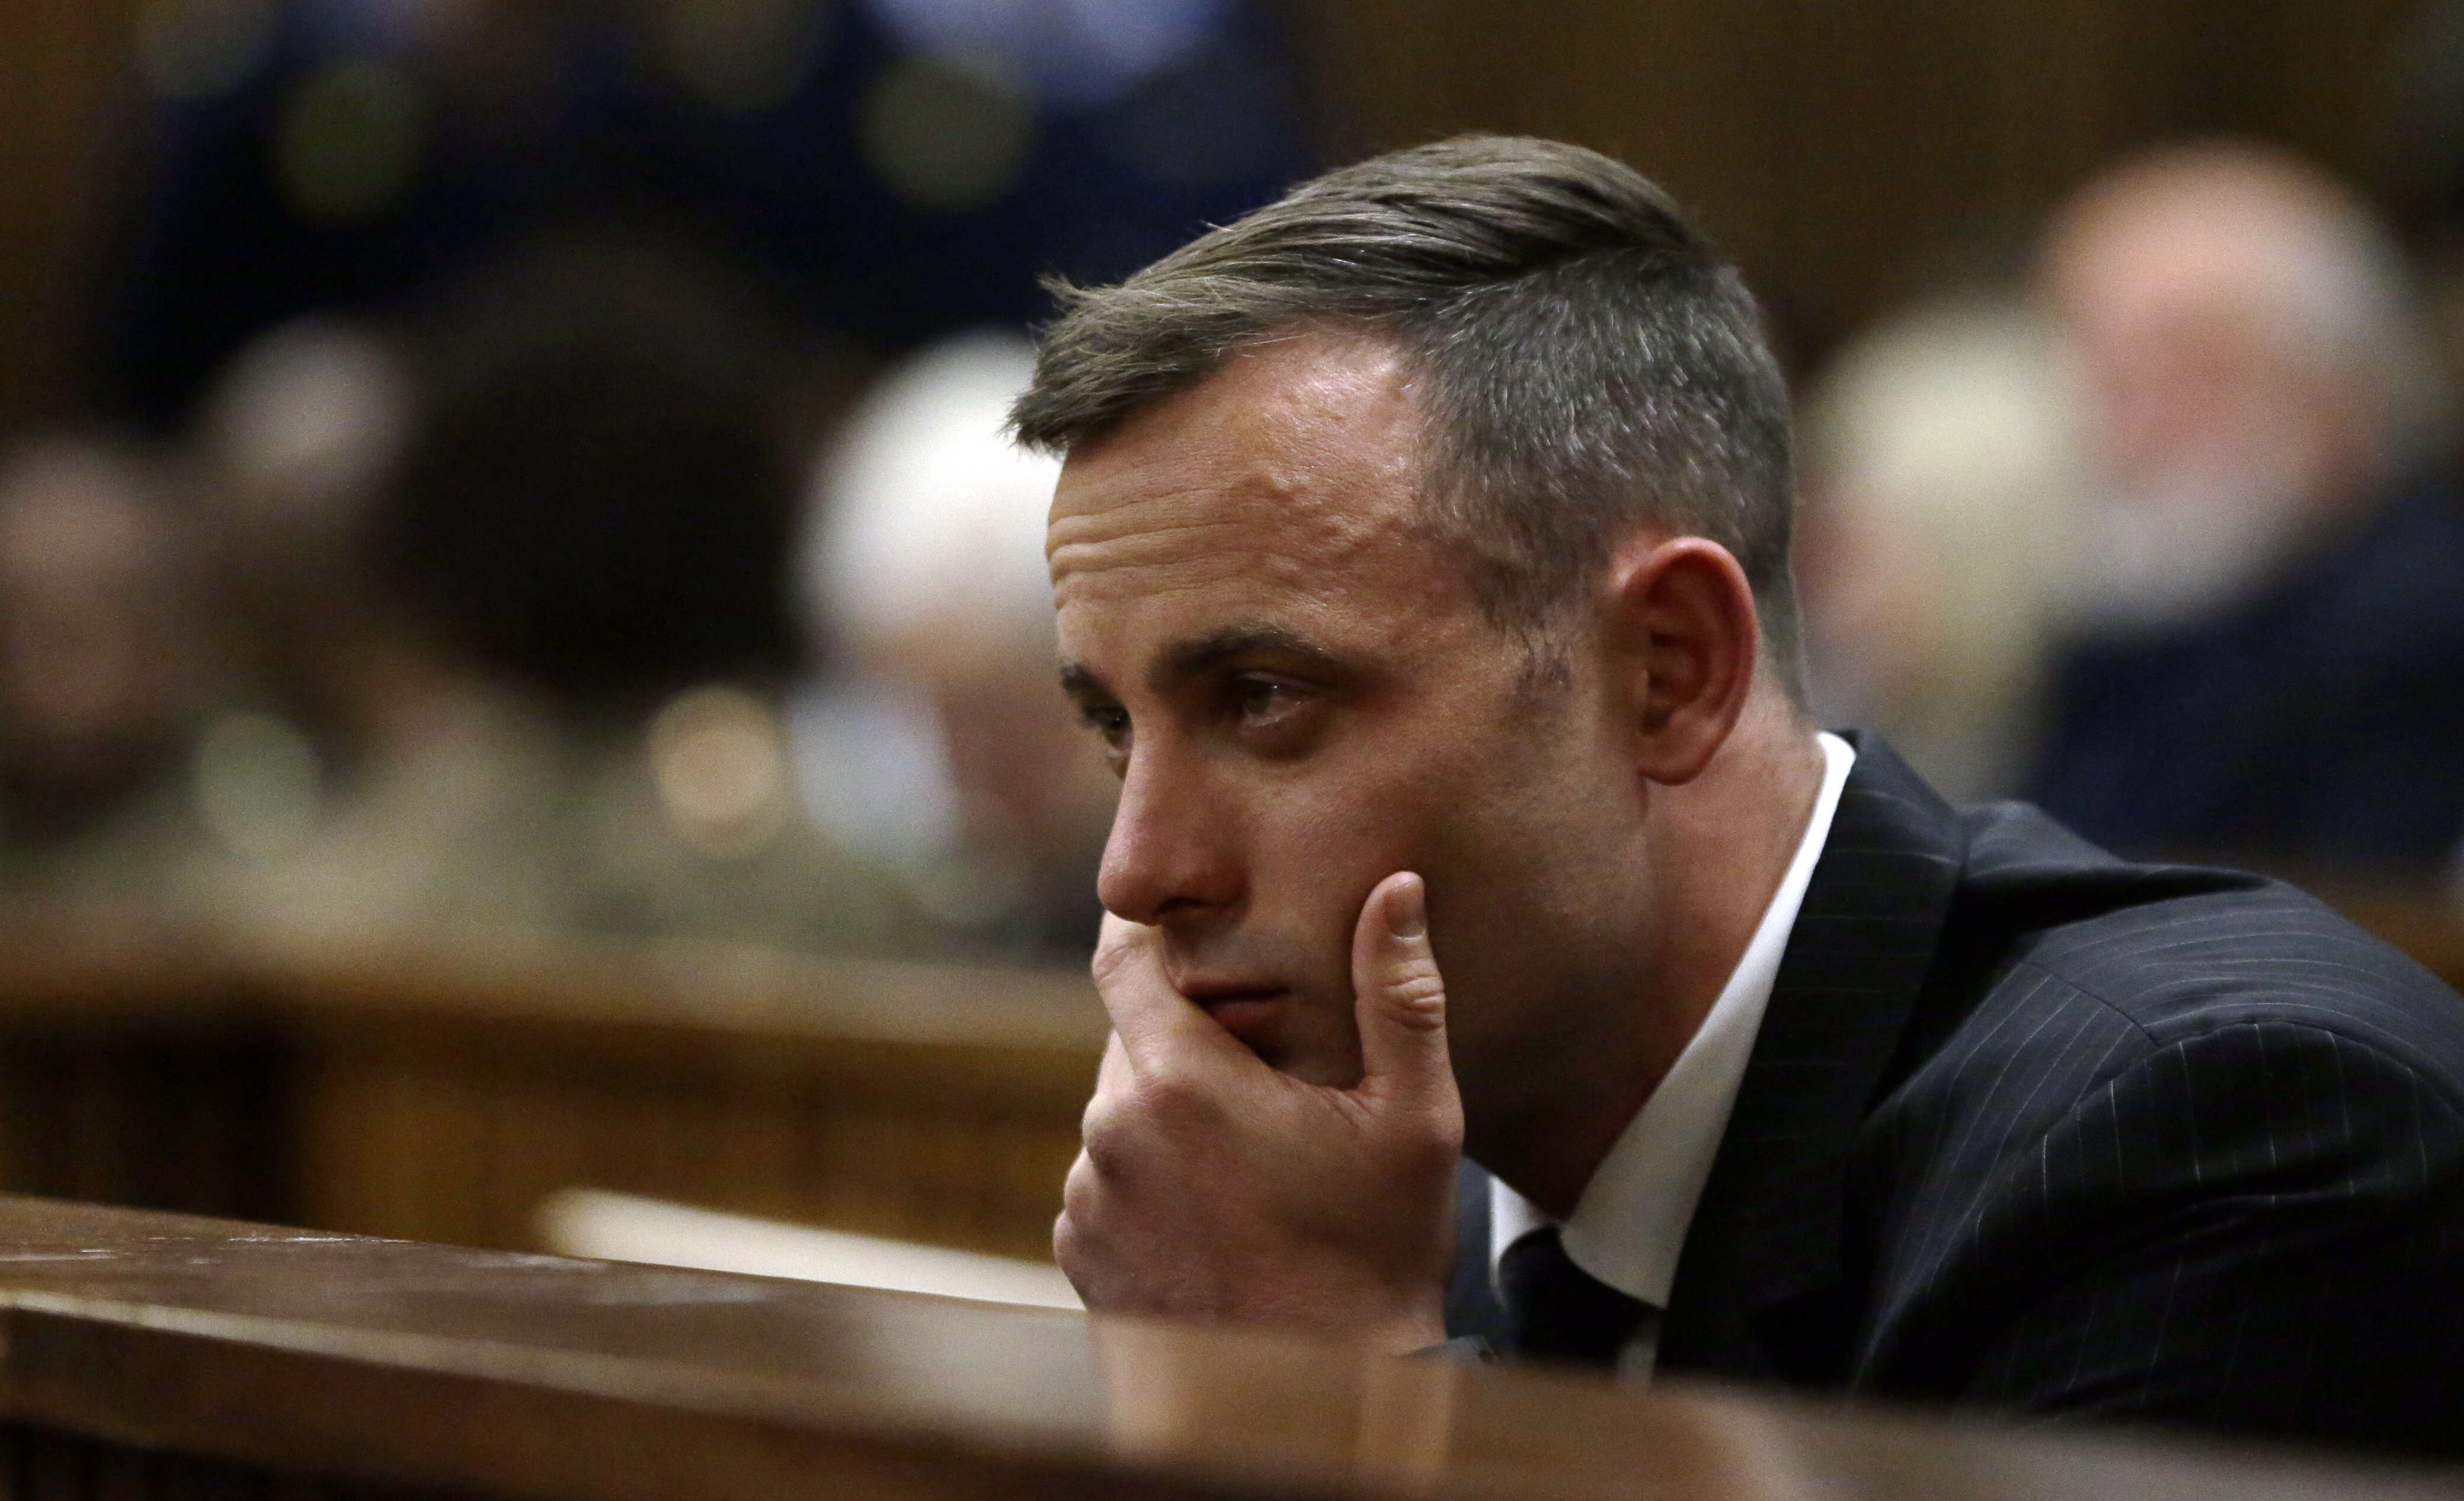 Oscar Pistorius Likely To Receive Shockingly Brief Sentence For Murder GettyImages 539801524